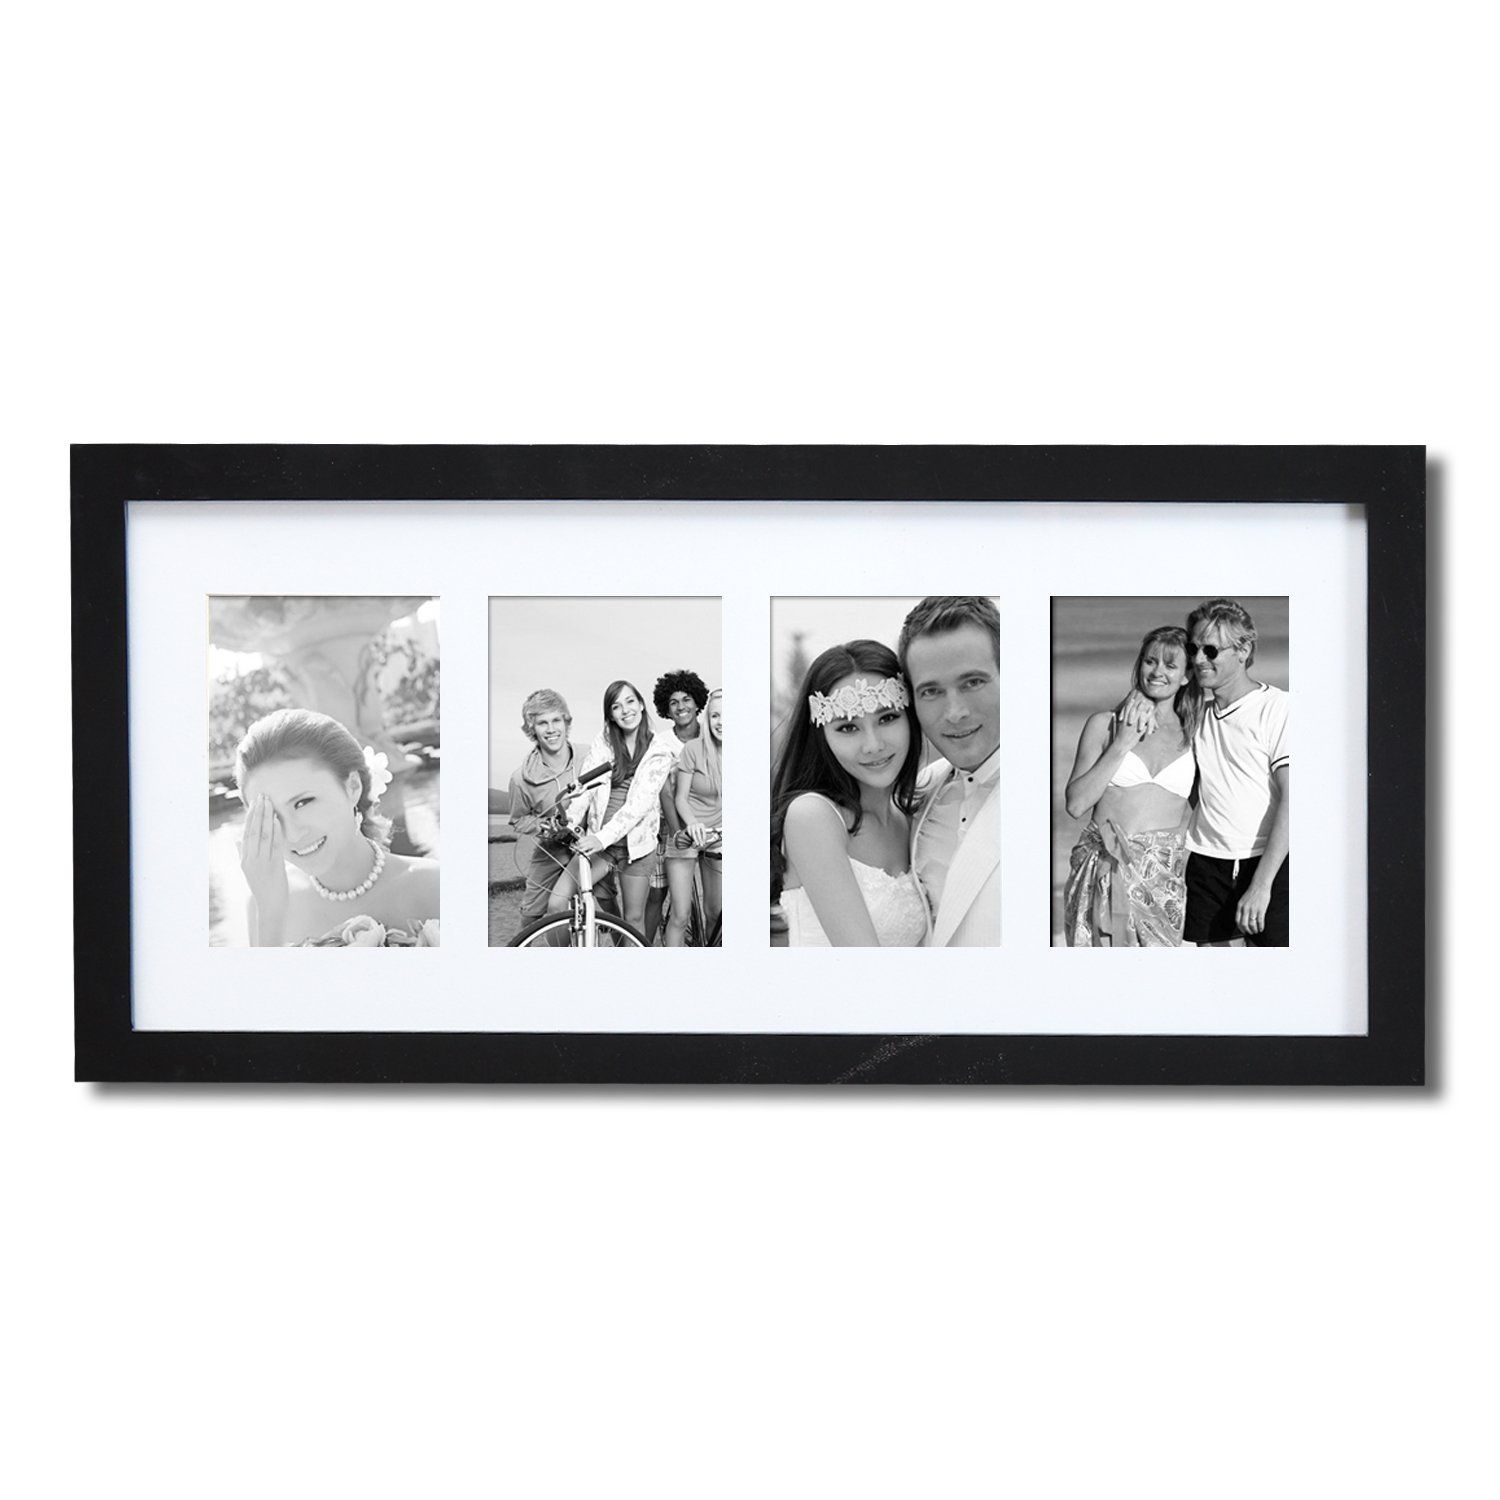 Adeco Decorative Black Wood Wall Hanging Picture Photo Frame With ...